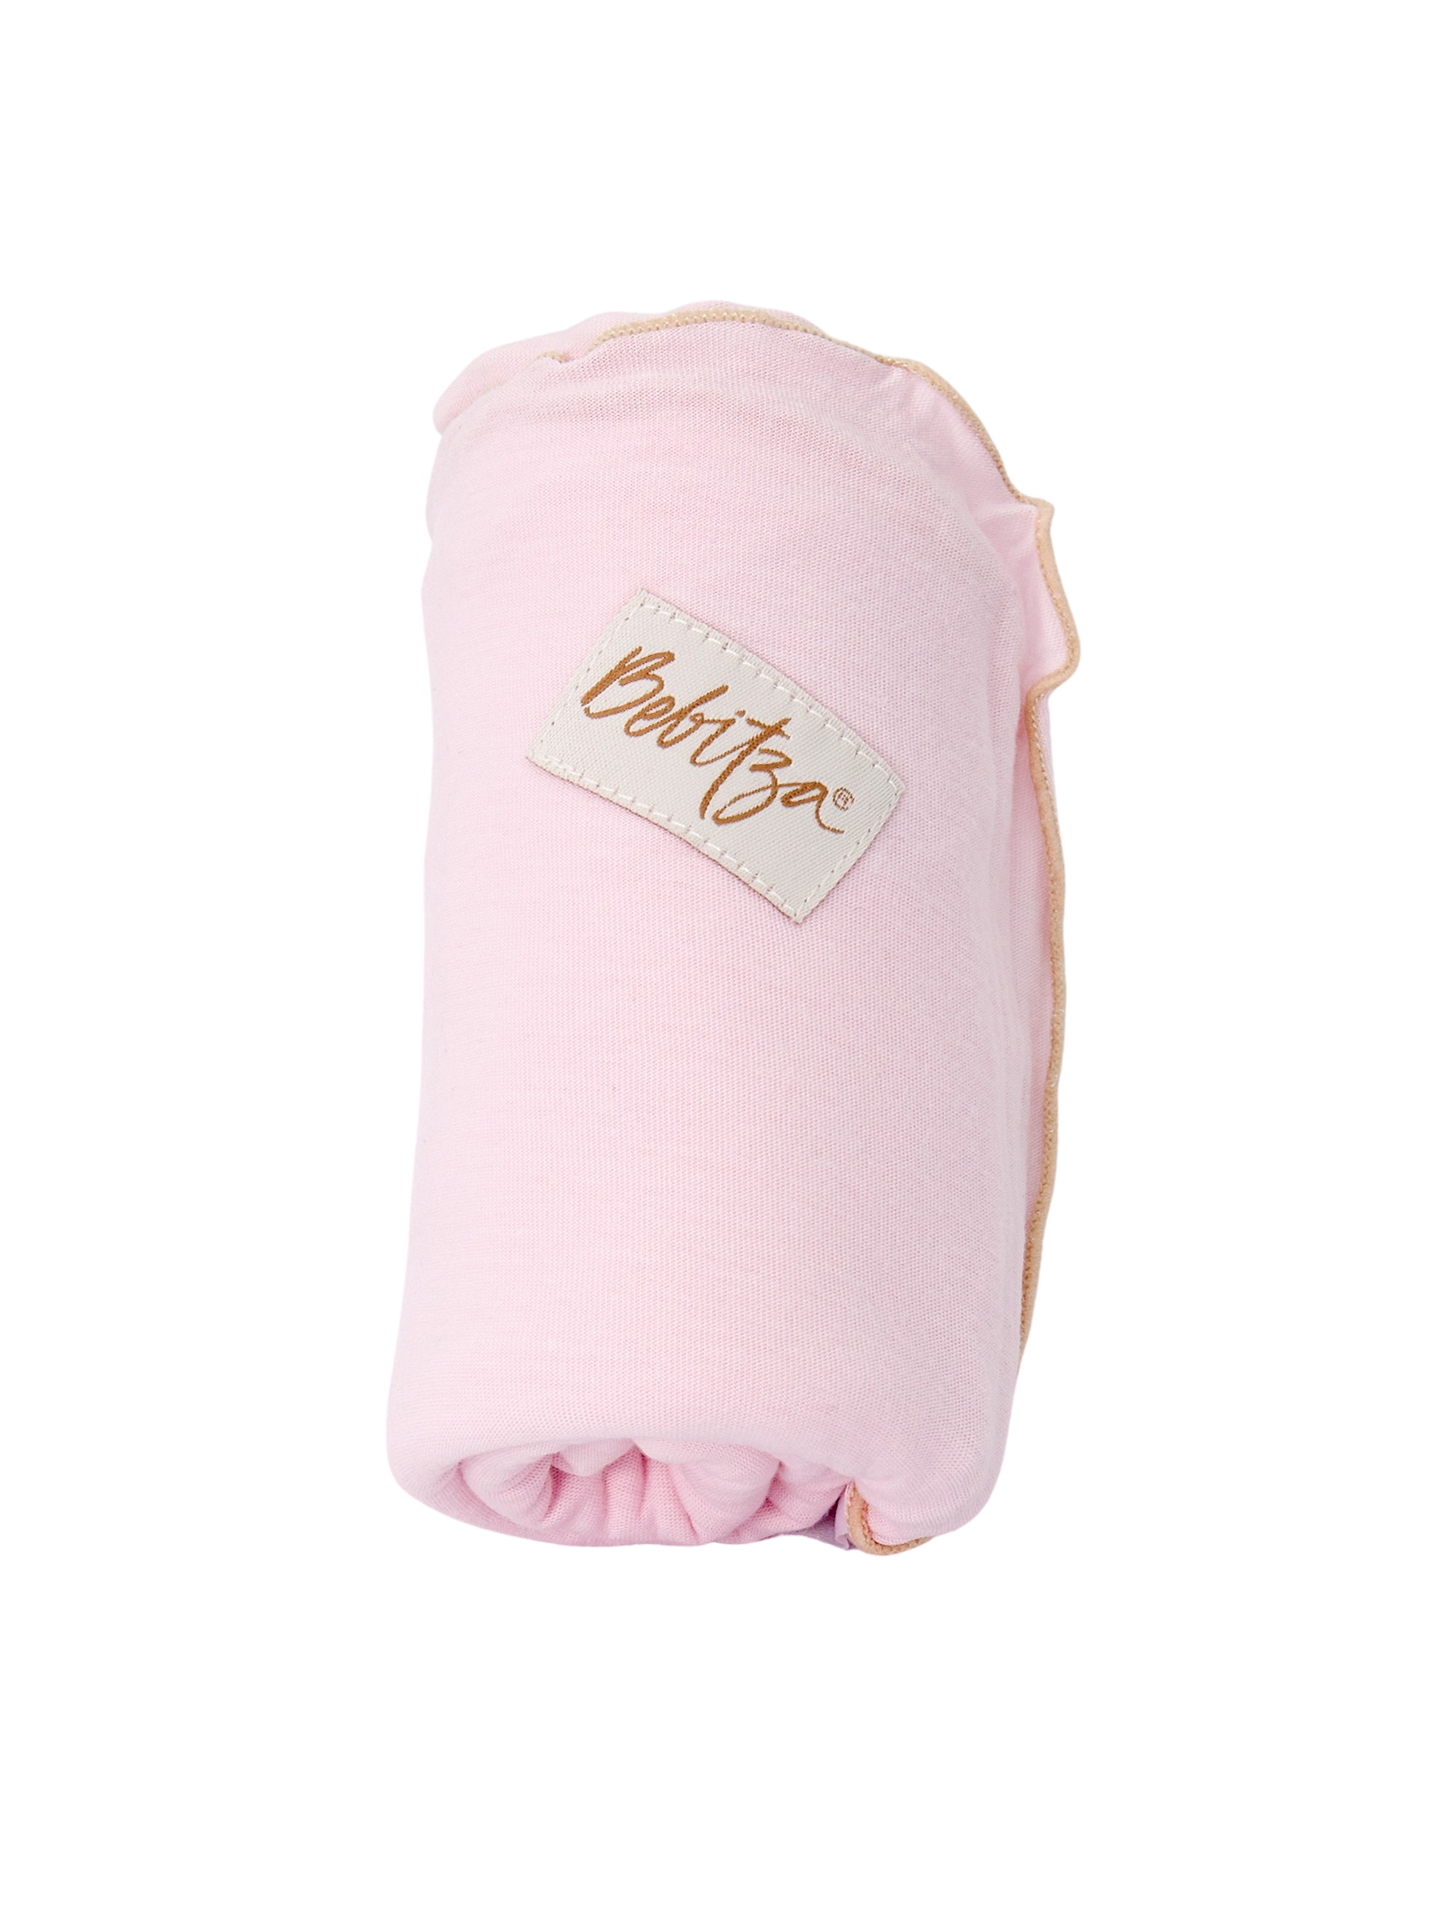 Baby Wrap - Antibacterial Bamboo - Single Pack - Light Pink